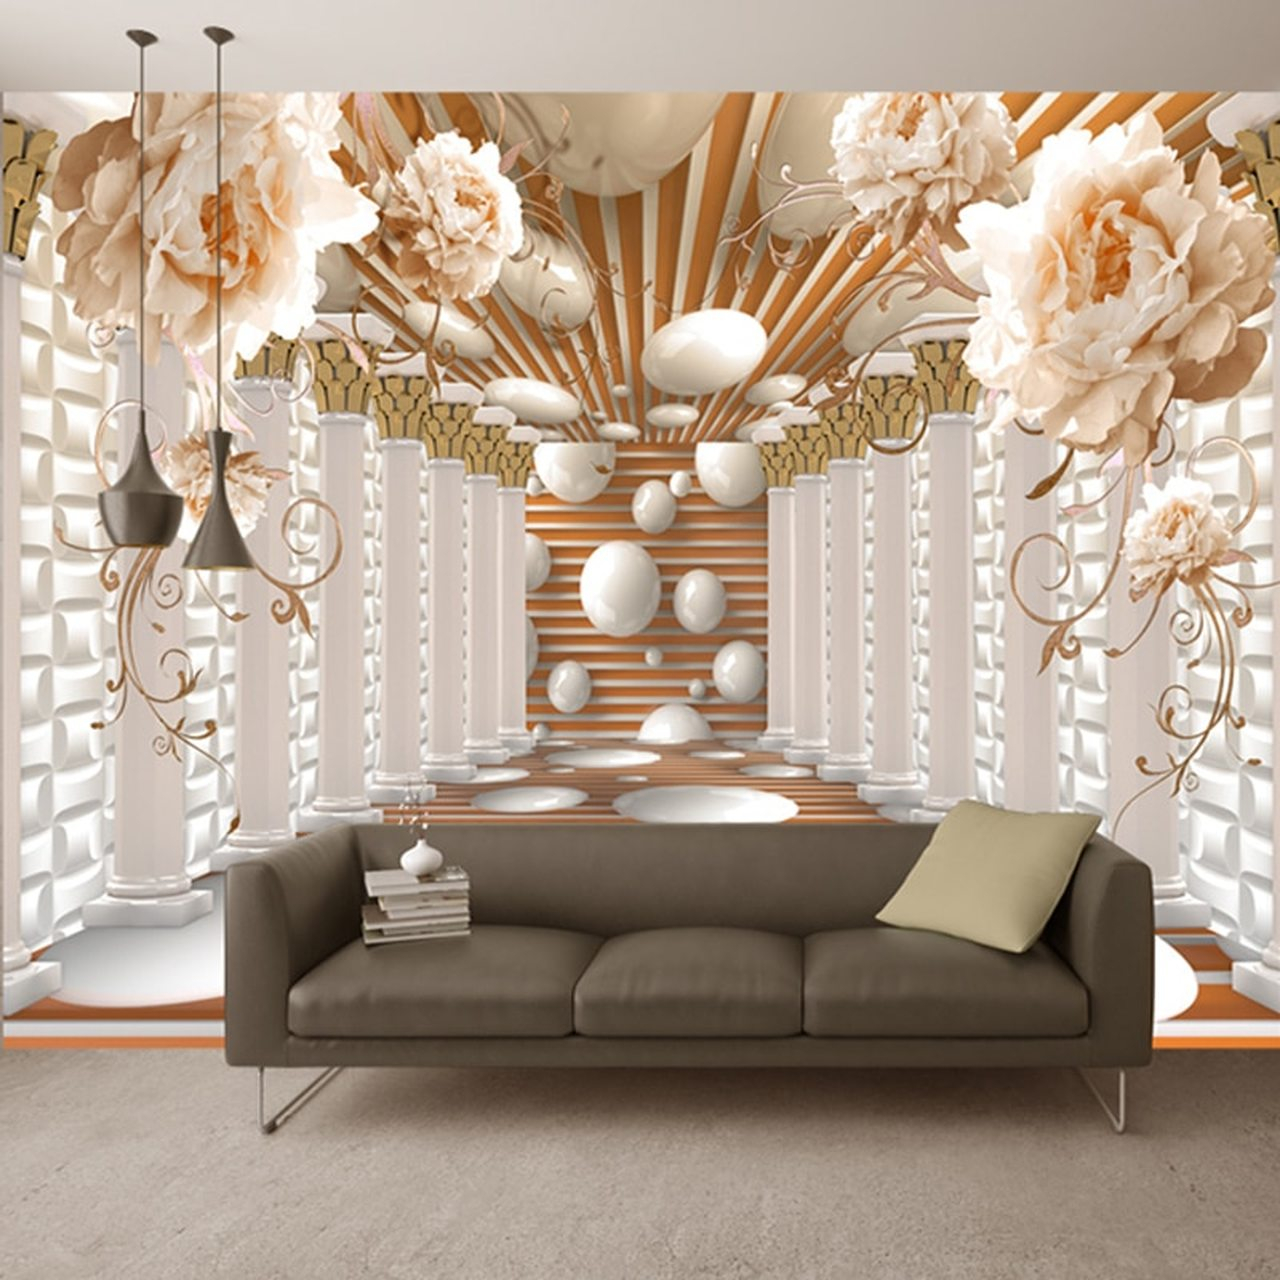 3d wallpaper modern abstract art rome column flower photo wall murals living room study backdrop wall paper home decor 3d fresco